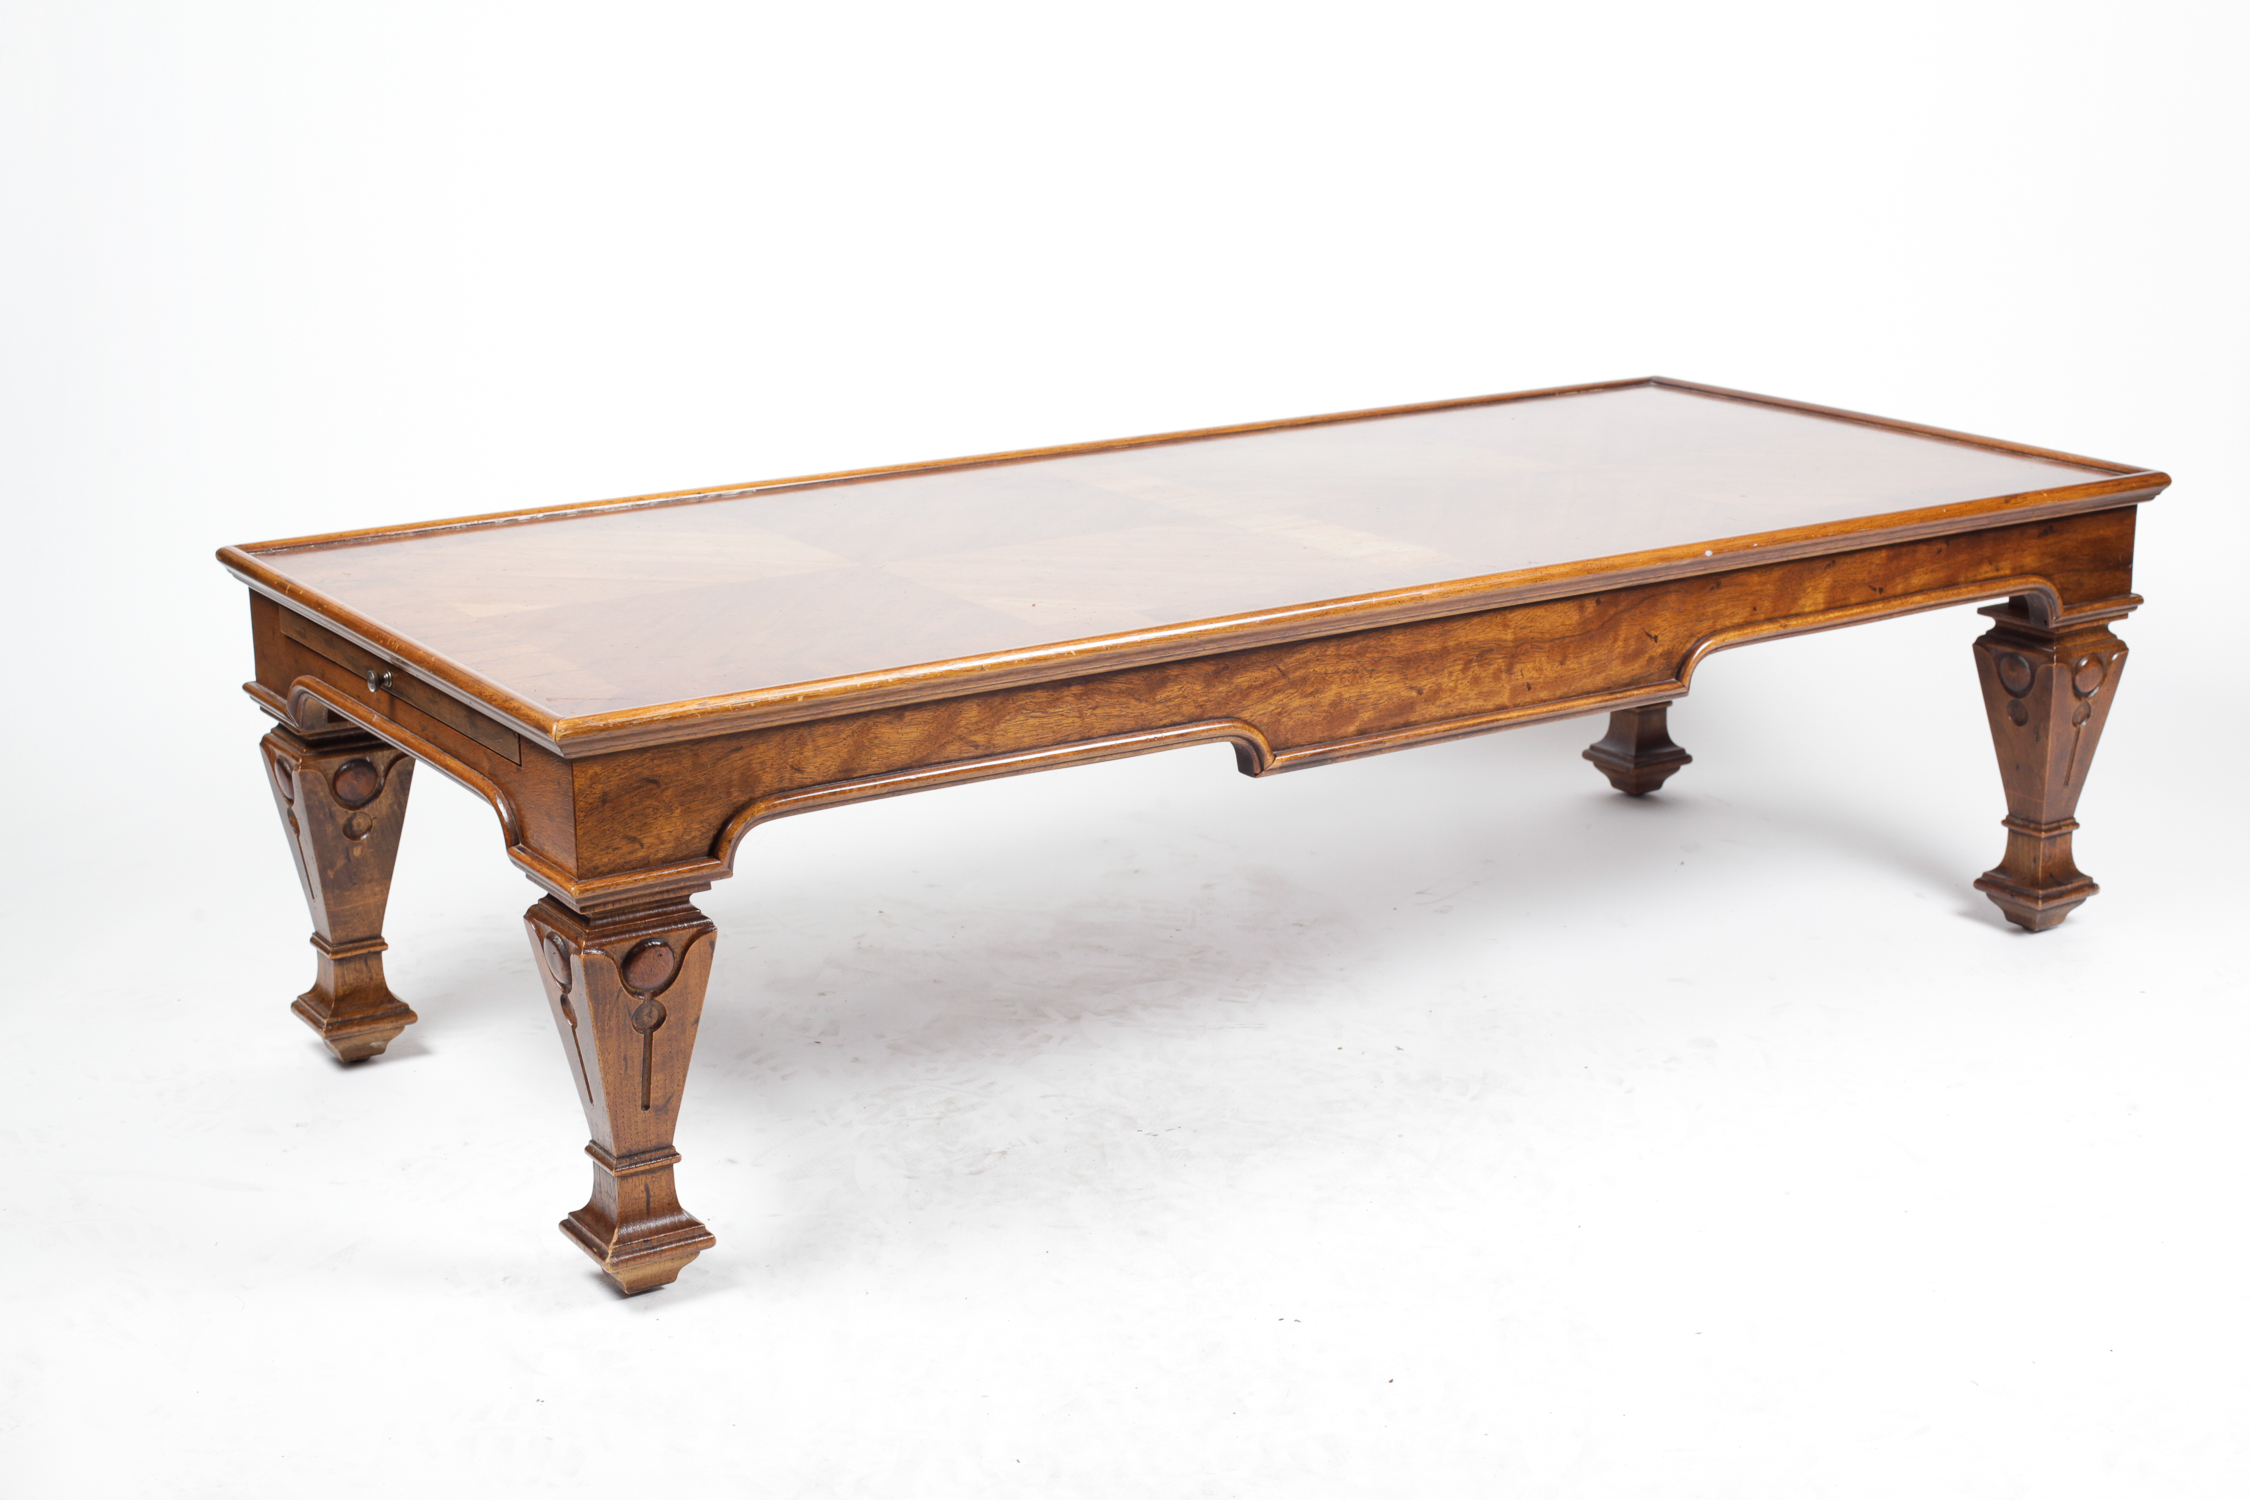 Vintage Coffee Table with Pull-Out Trays : EBTH